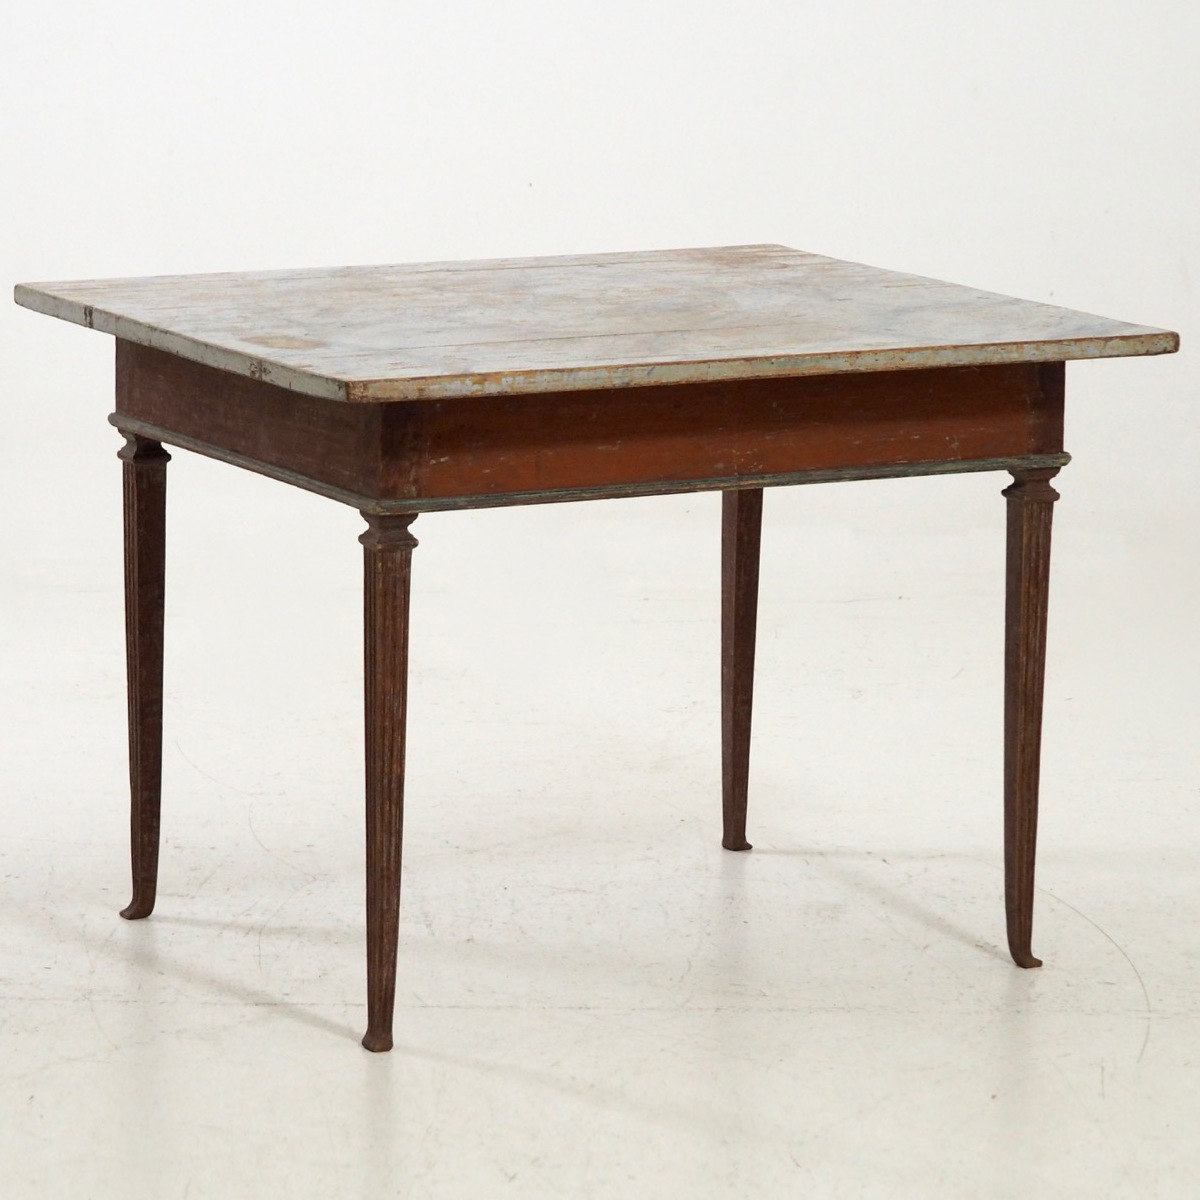 Freestanding table, circa 1780 - 1790. - € 2.500